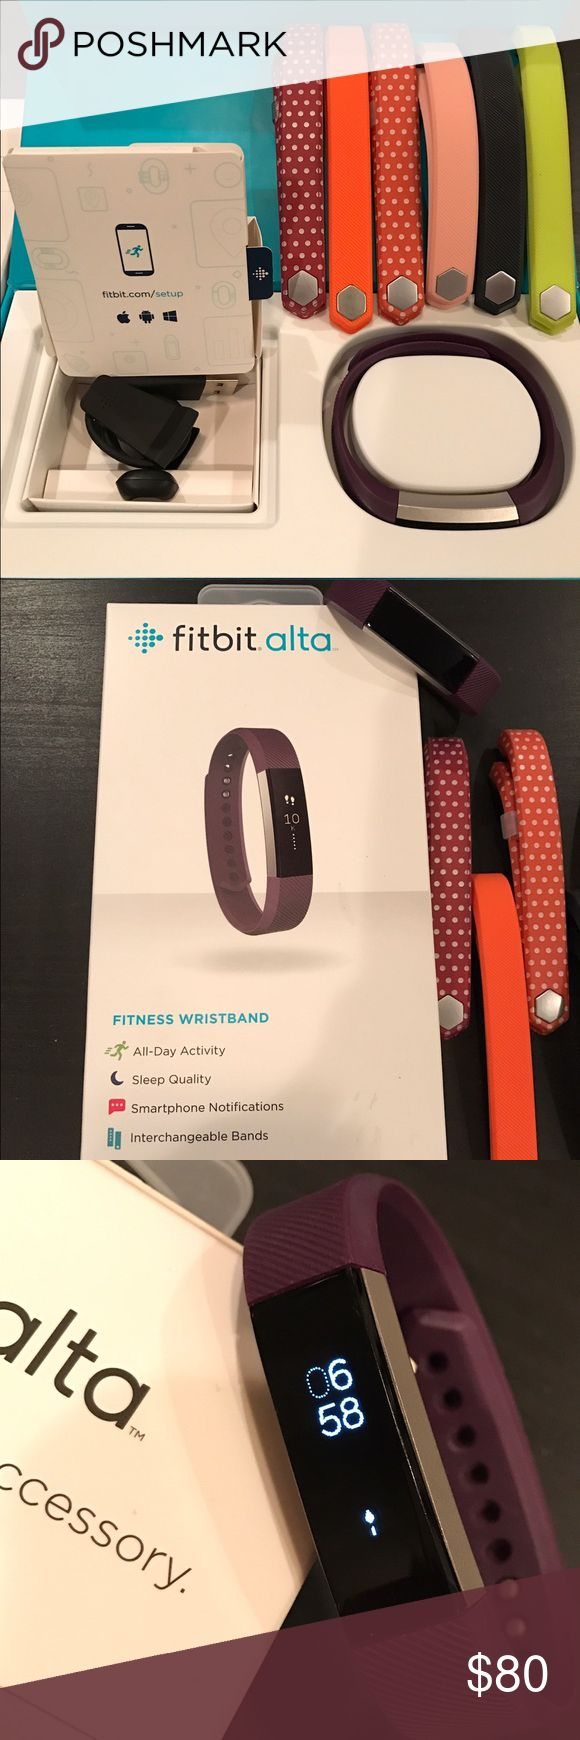 Selling this Fitbit Alta on Poshmark! My username is: hokiewife421.  #shopmycloset #